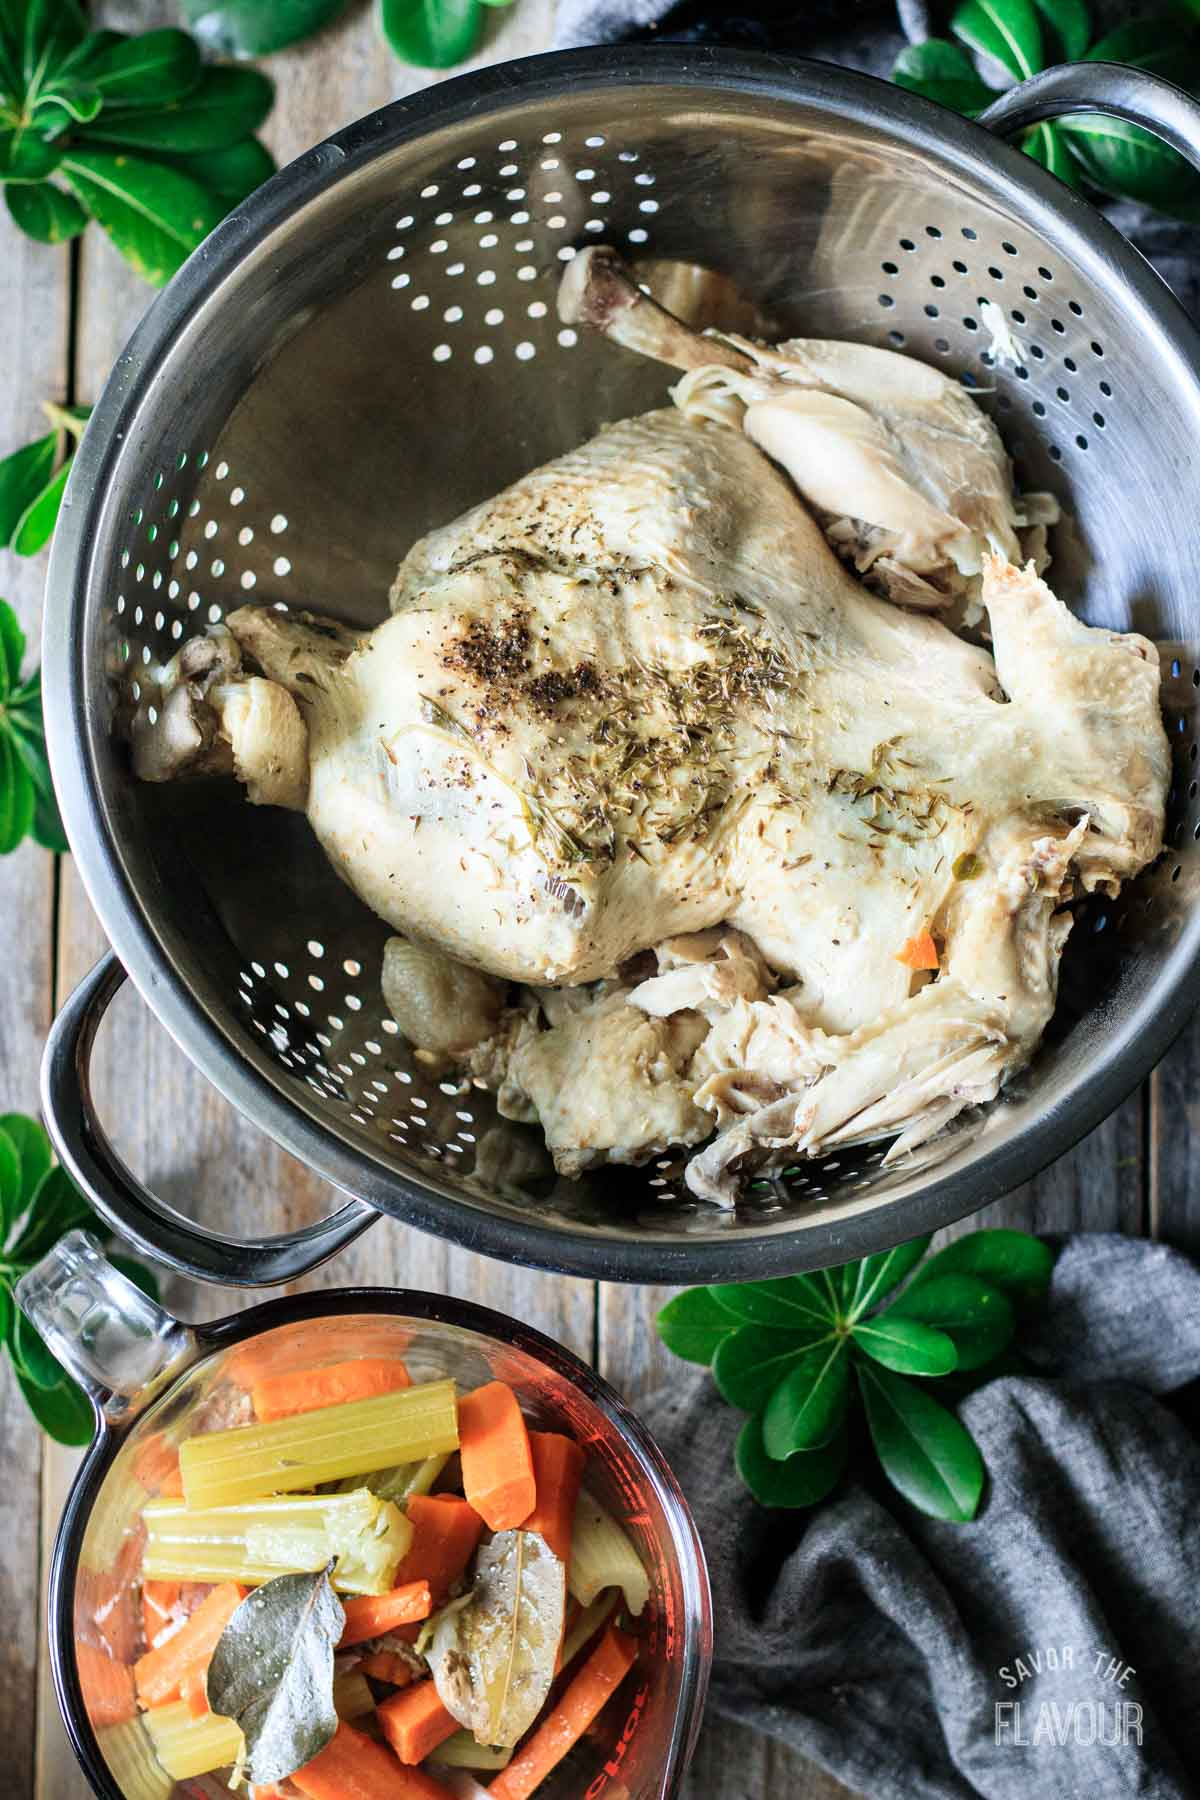 straining the boiled chicken in a colander